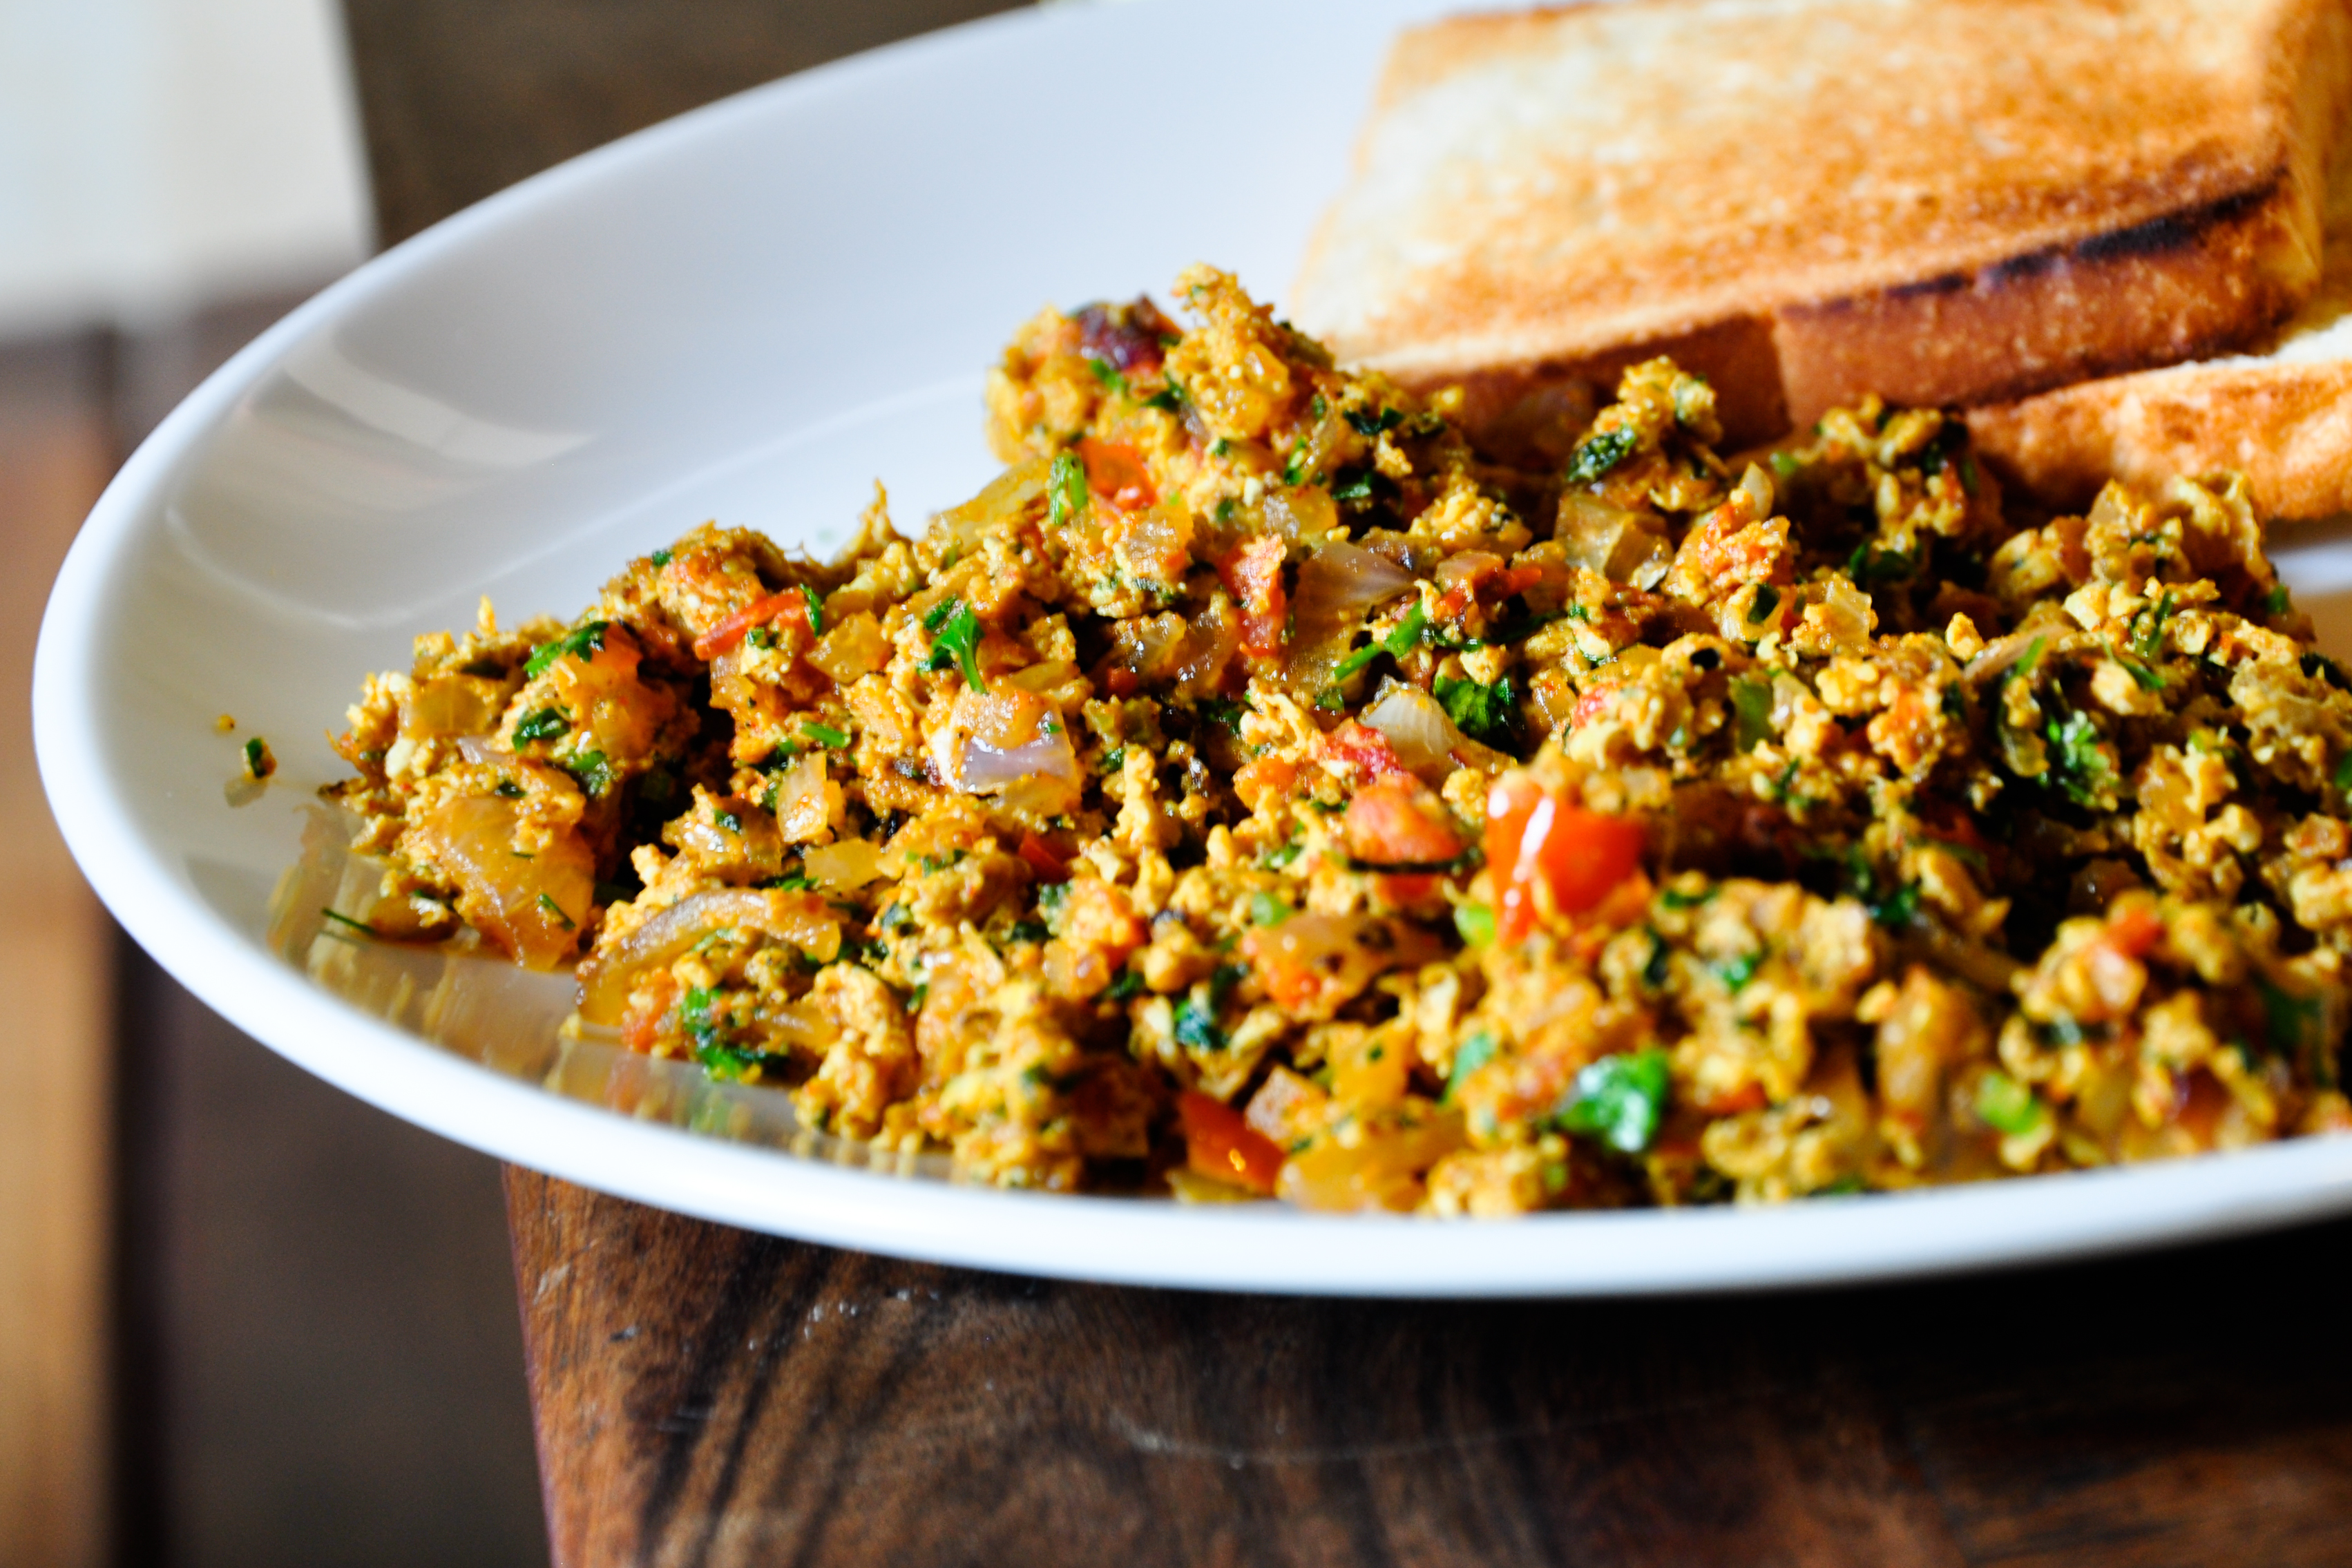 Spicy_egg_bhurji_